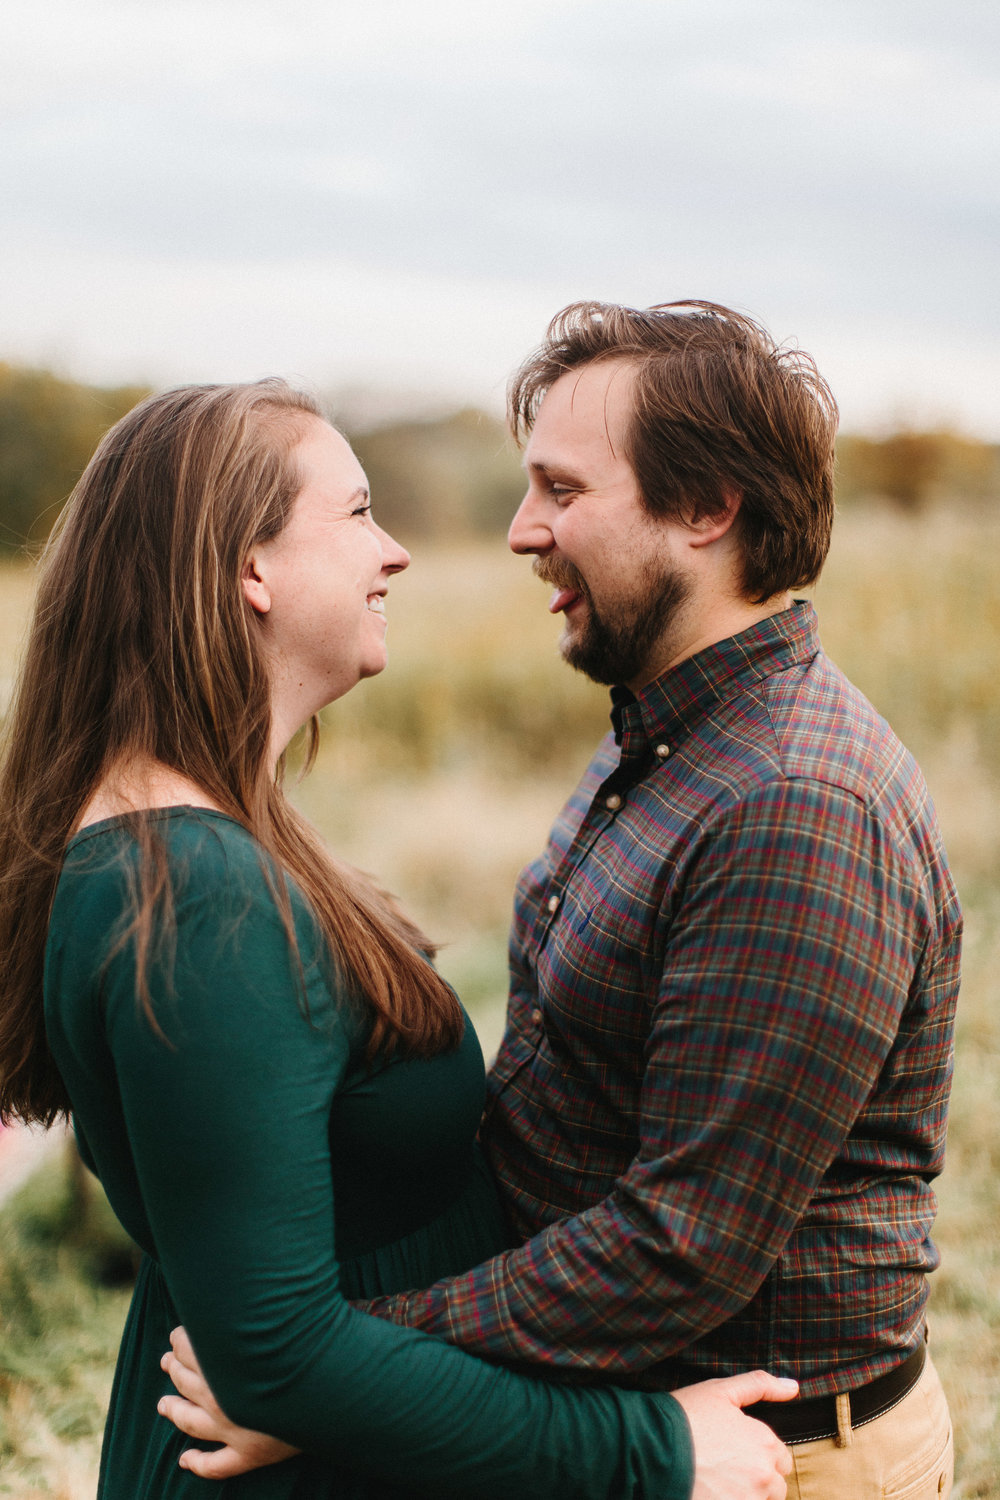 iowa_city_engagement_adventure_prairie_graduate_at_home_dog_couples_downtown_wilsons_orchard_1234.jpg